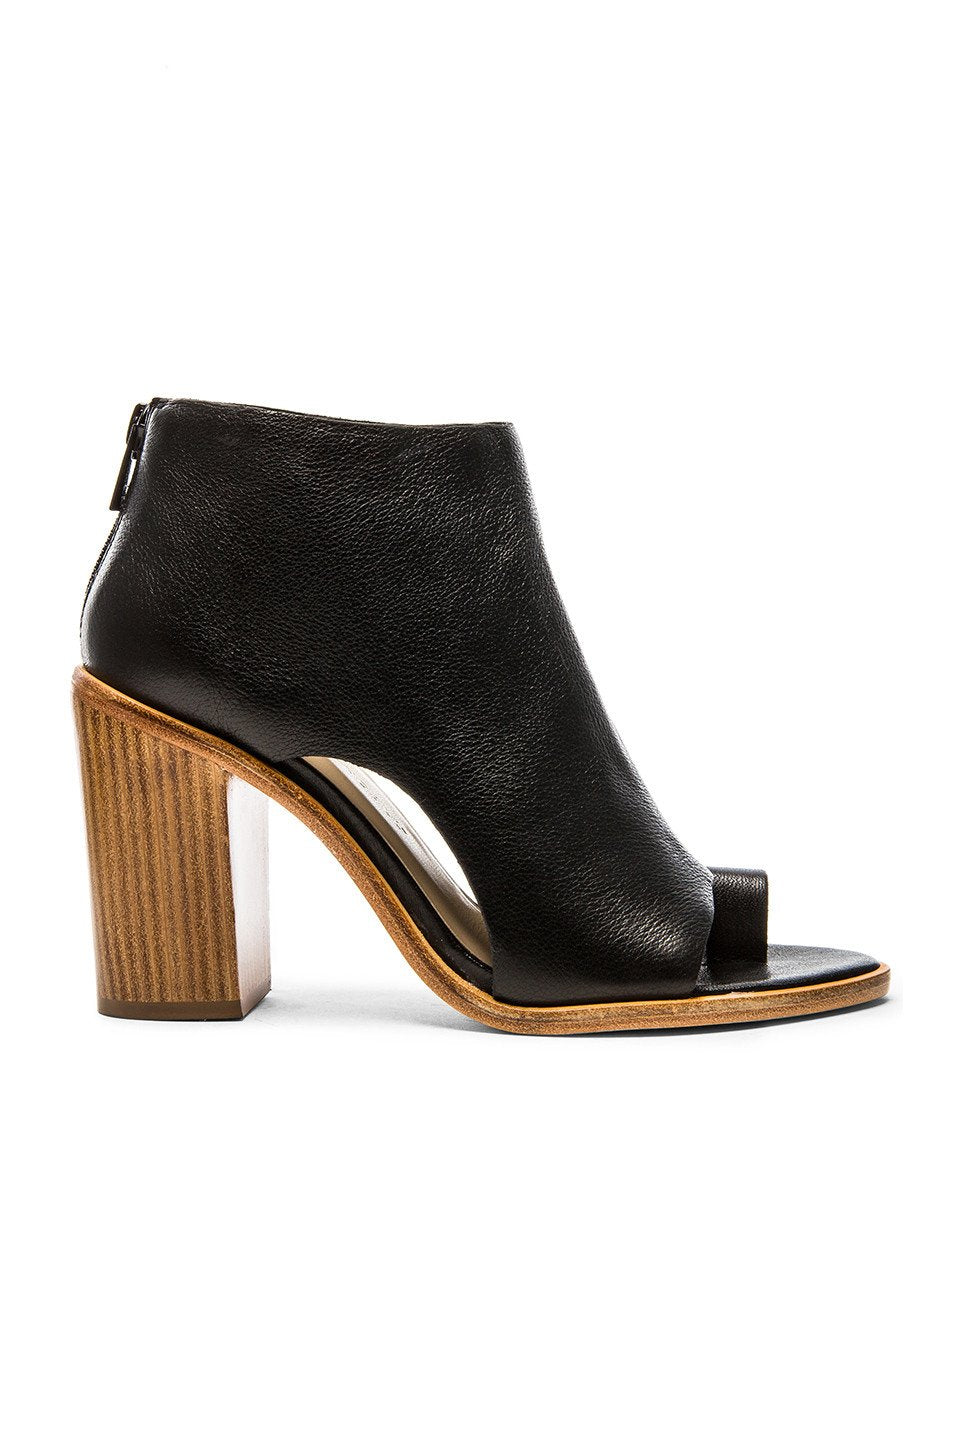 Gigi Open Toe Bootie - Kustom Label - 1